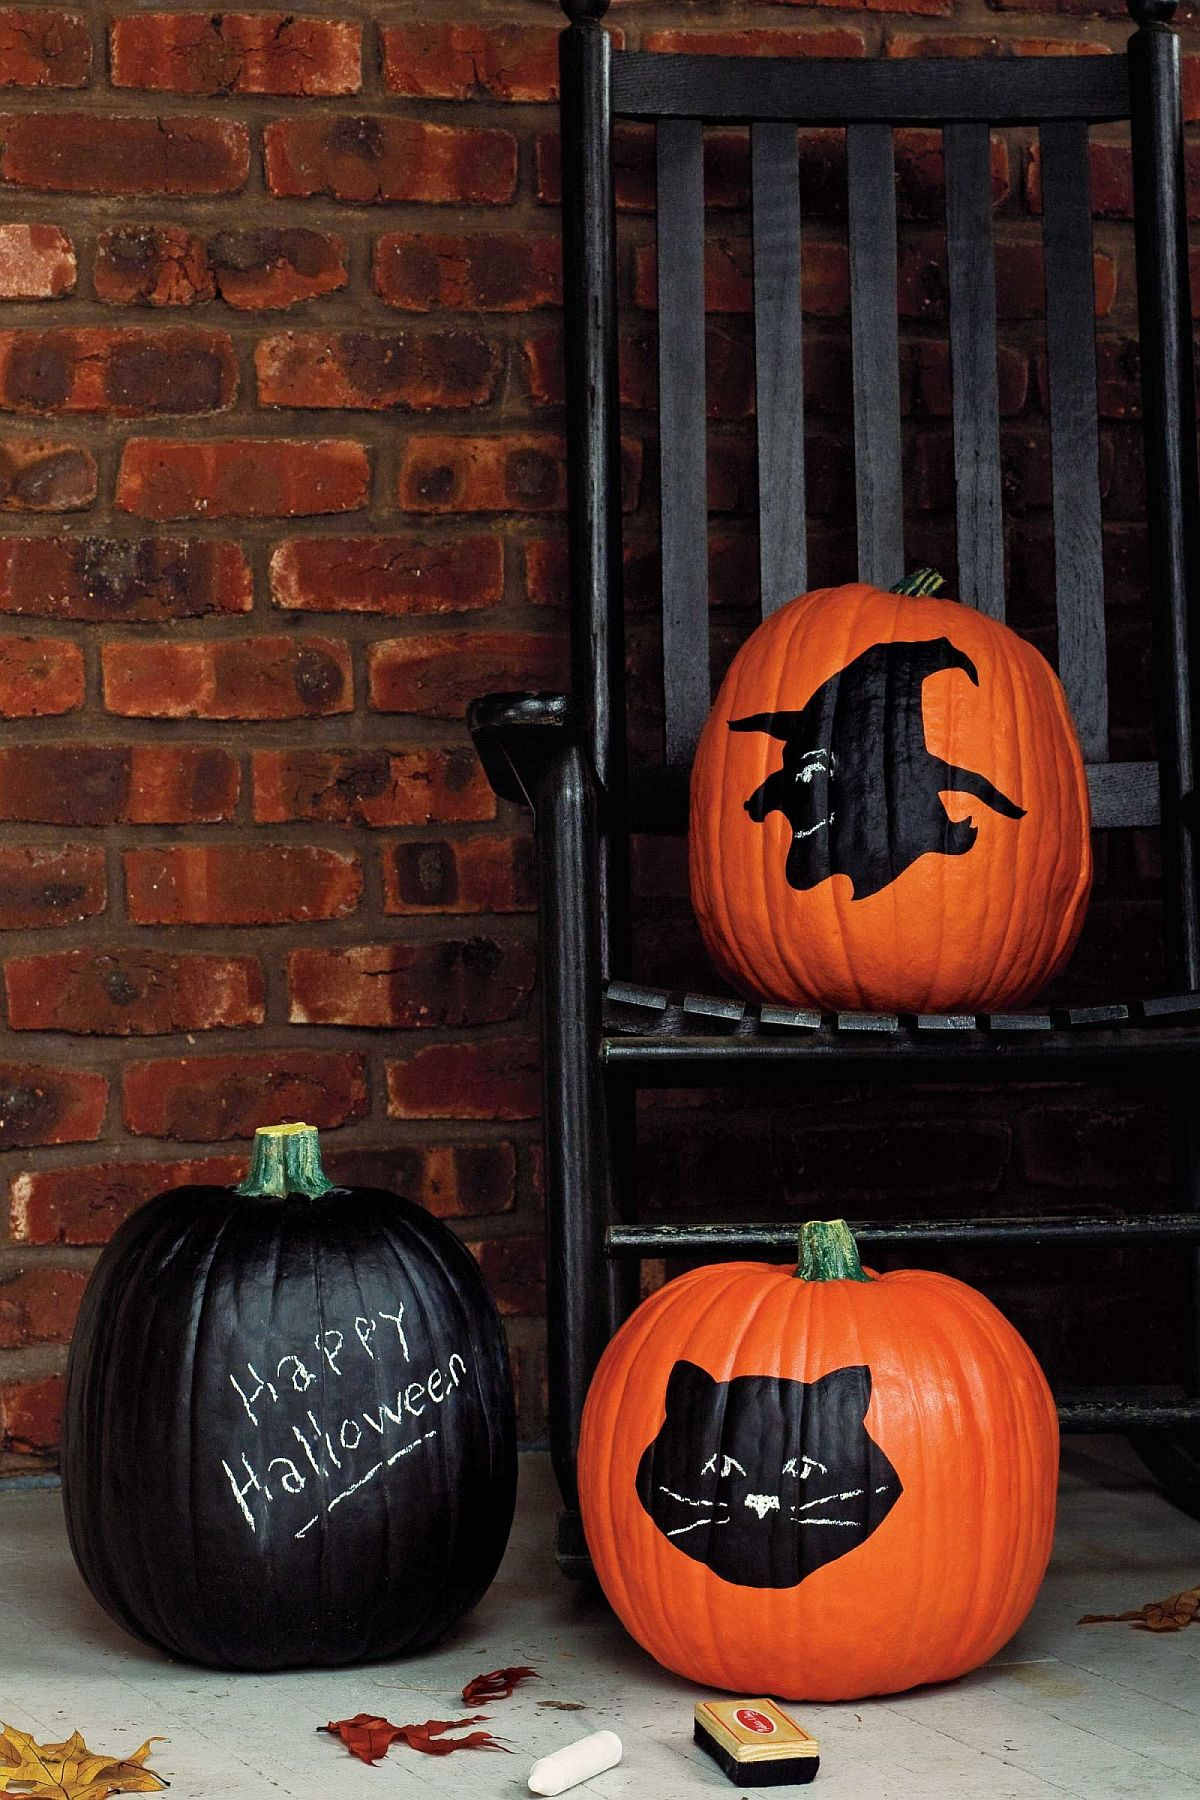 Use chalkboard and paint to create a cool pumpkin clad Halloween porch